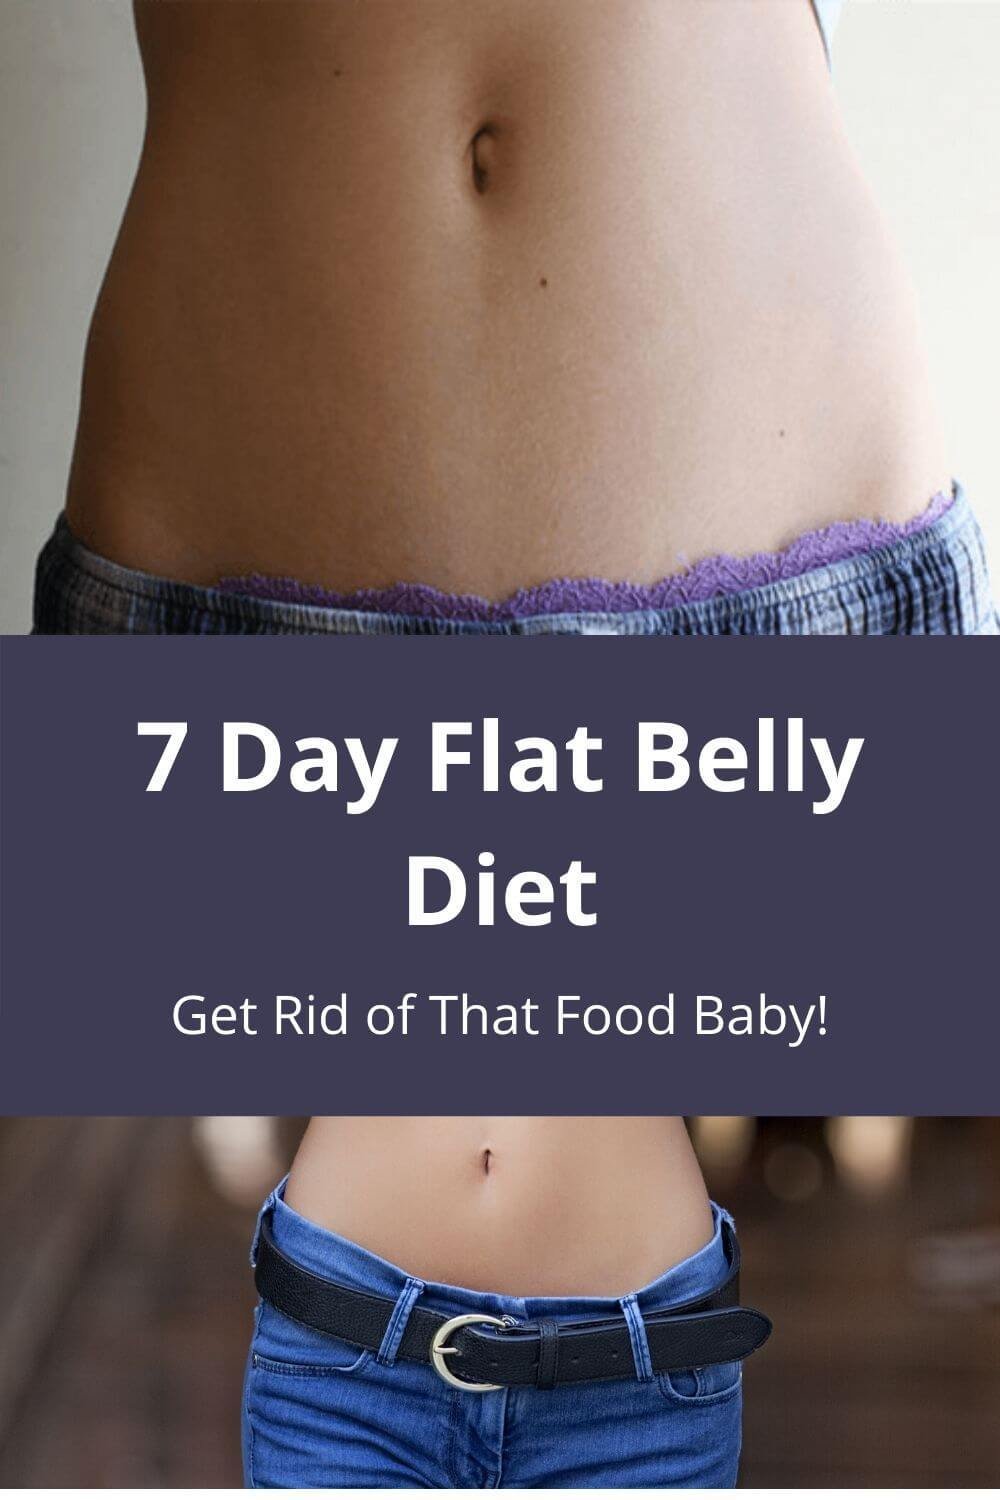 7 day flat belly diet - get rid of that food belly!